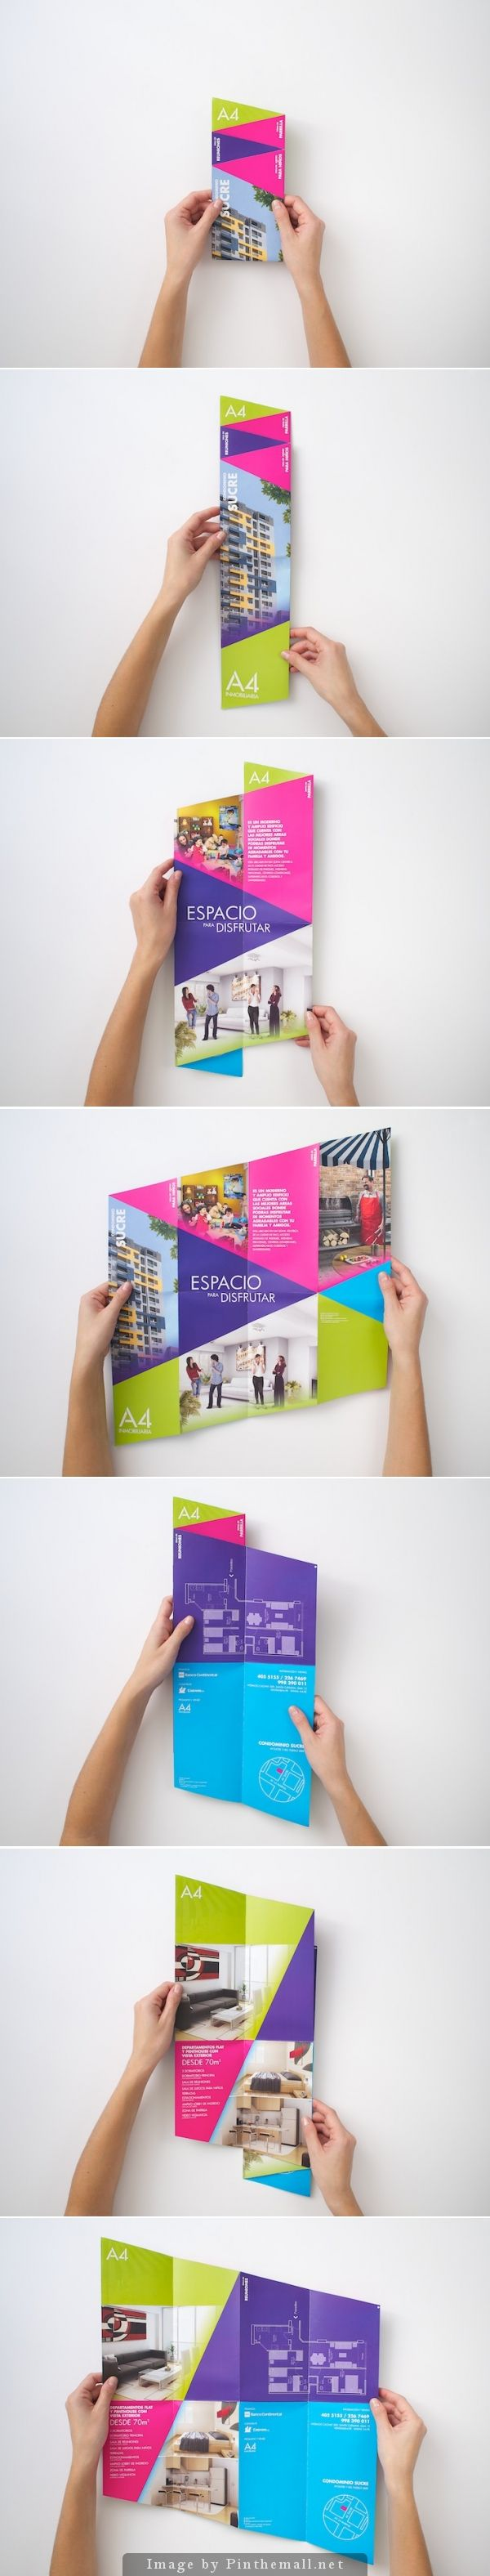 Brochure design layout